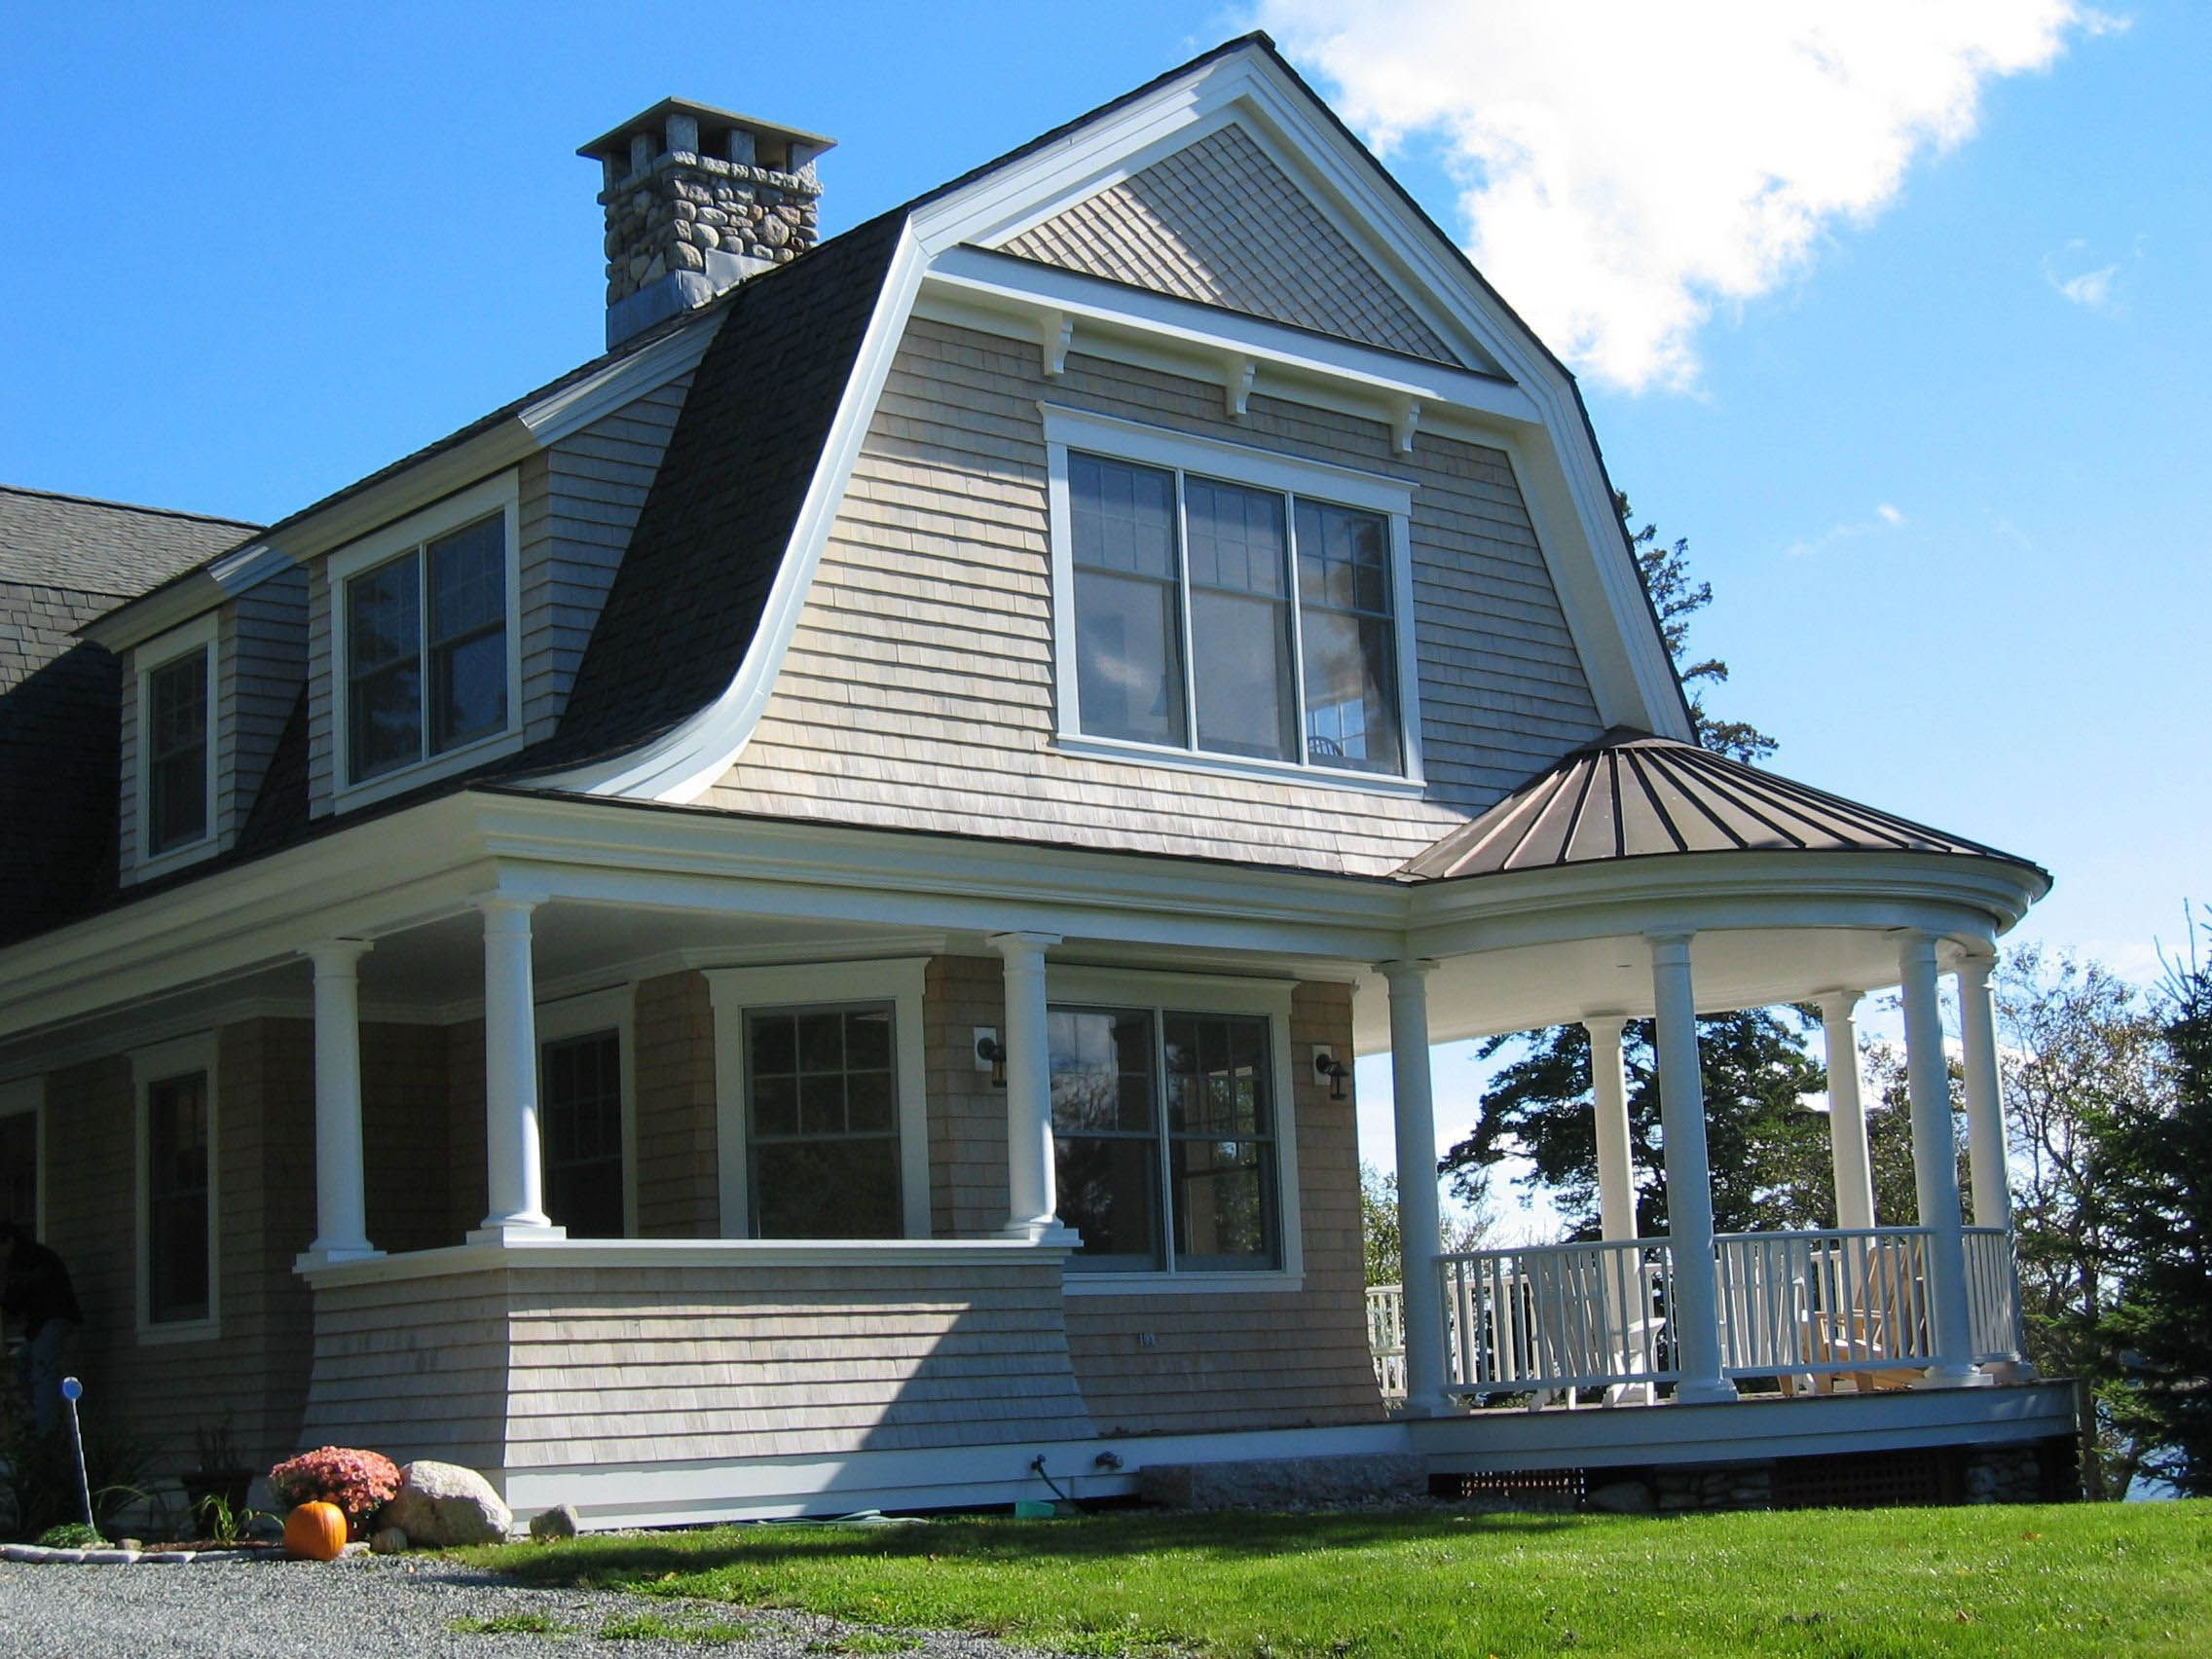 Porch Roof Designs And Styles Porch Roof Design Porch Roof